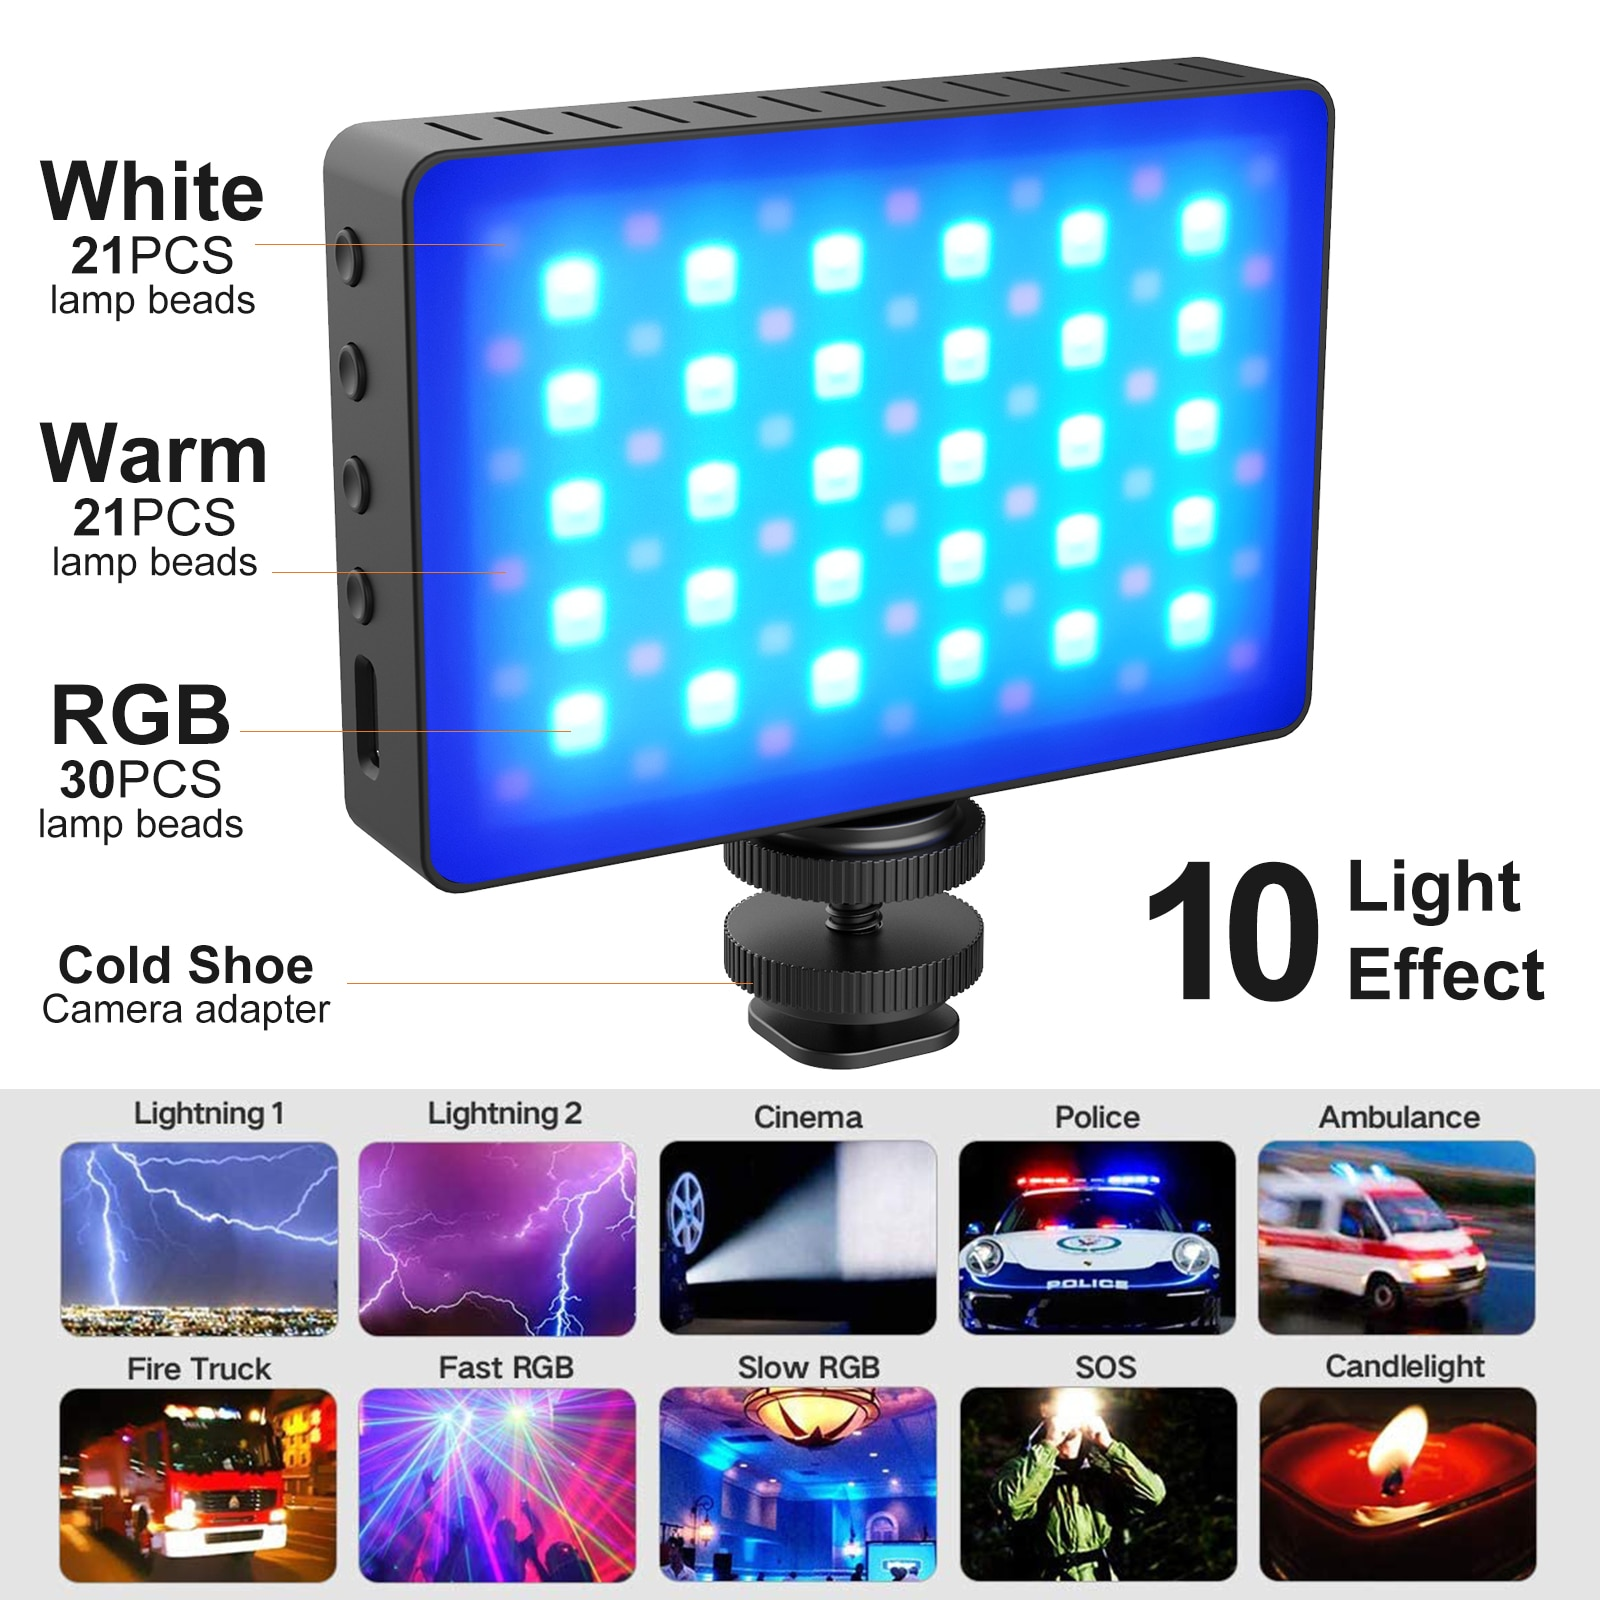 72 Lamp Beads Mini 30W RGB LED Video Light With 3000mAh Rechargeable Battery For Photography Lighting 10 Light Effect Mode